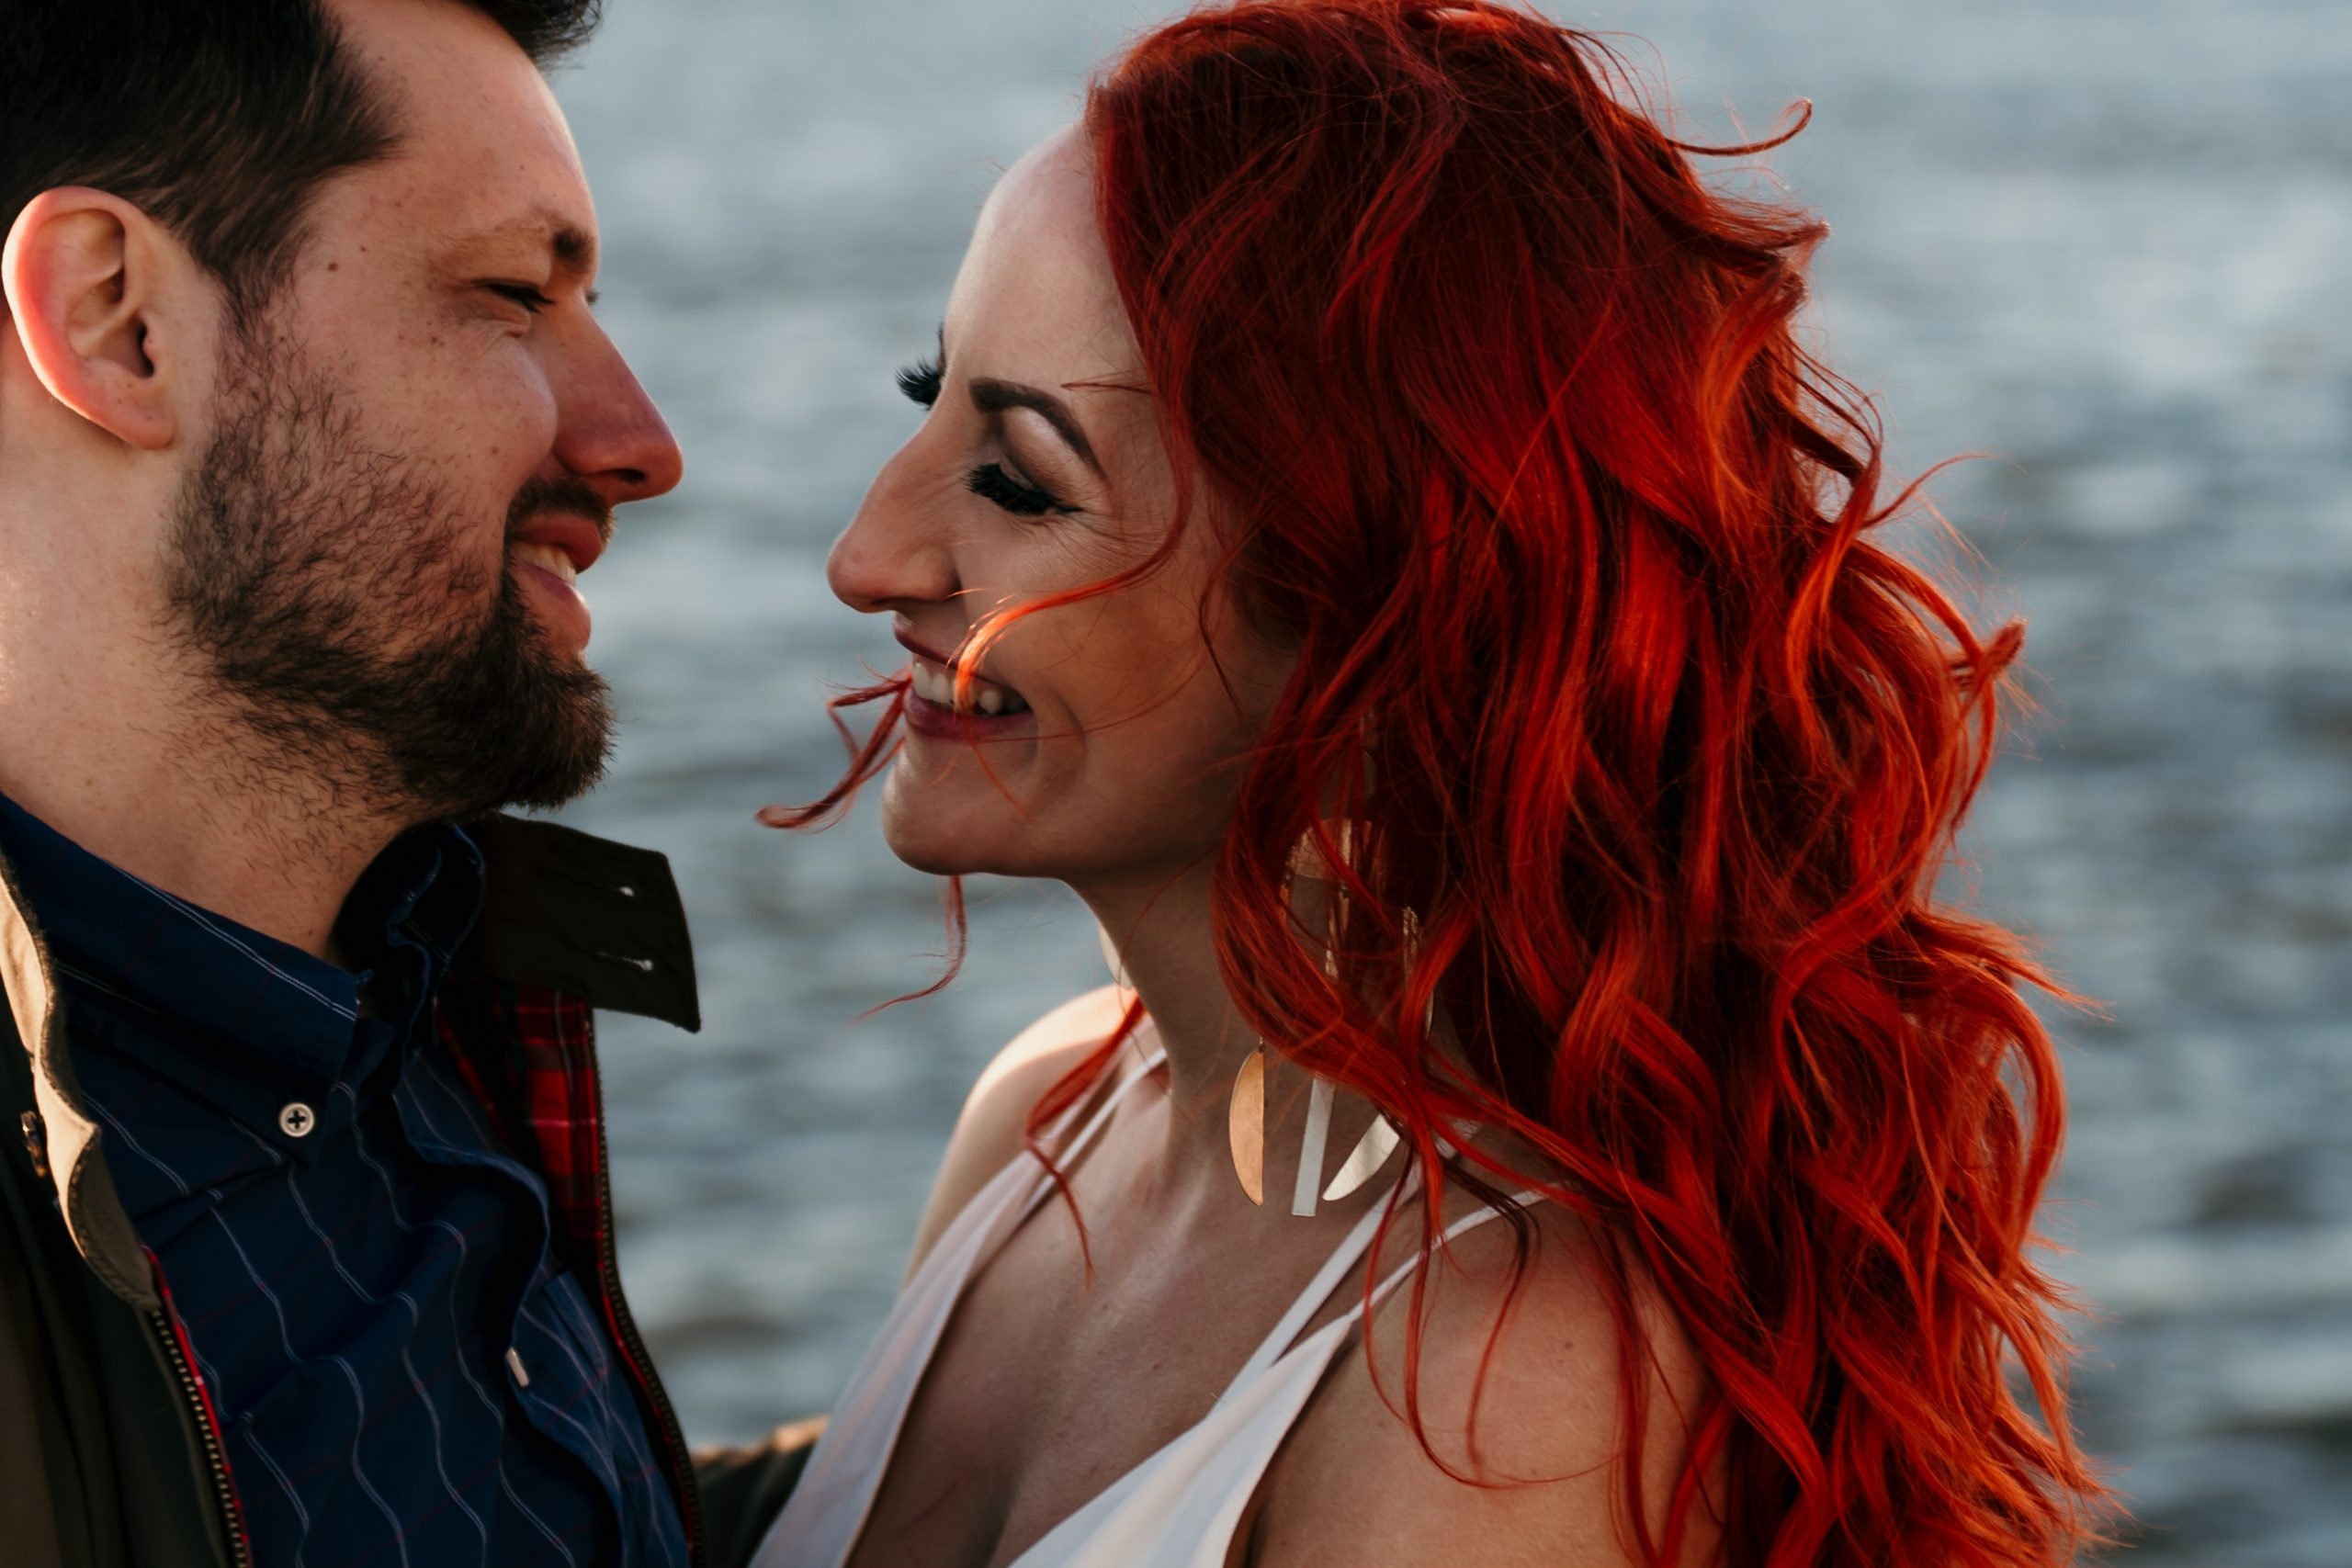 happy-couple-red-hair-suessmoments-brooklyn-photographer